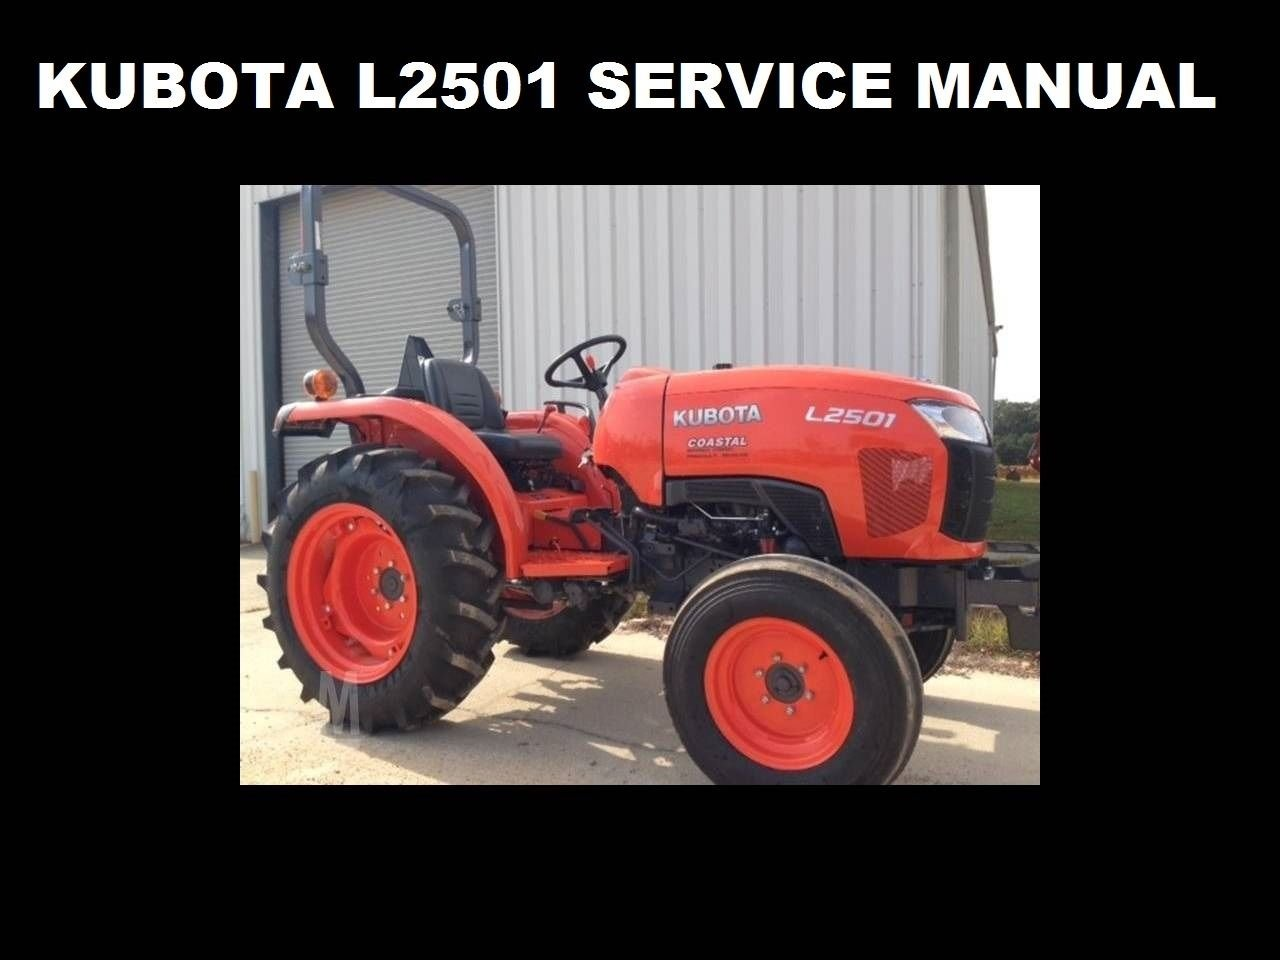 How Much Is A Power Steering Pump >> KUBOTA L2501 TRACTOR WORKSHOP MANUAL 440pg for L-2501 ...